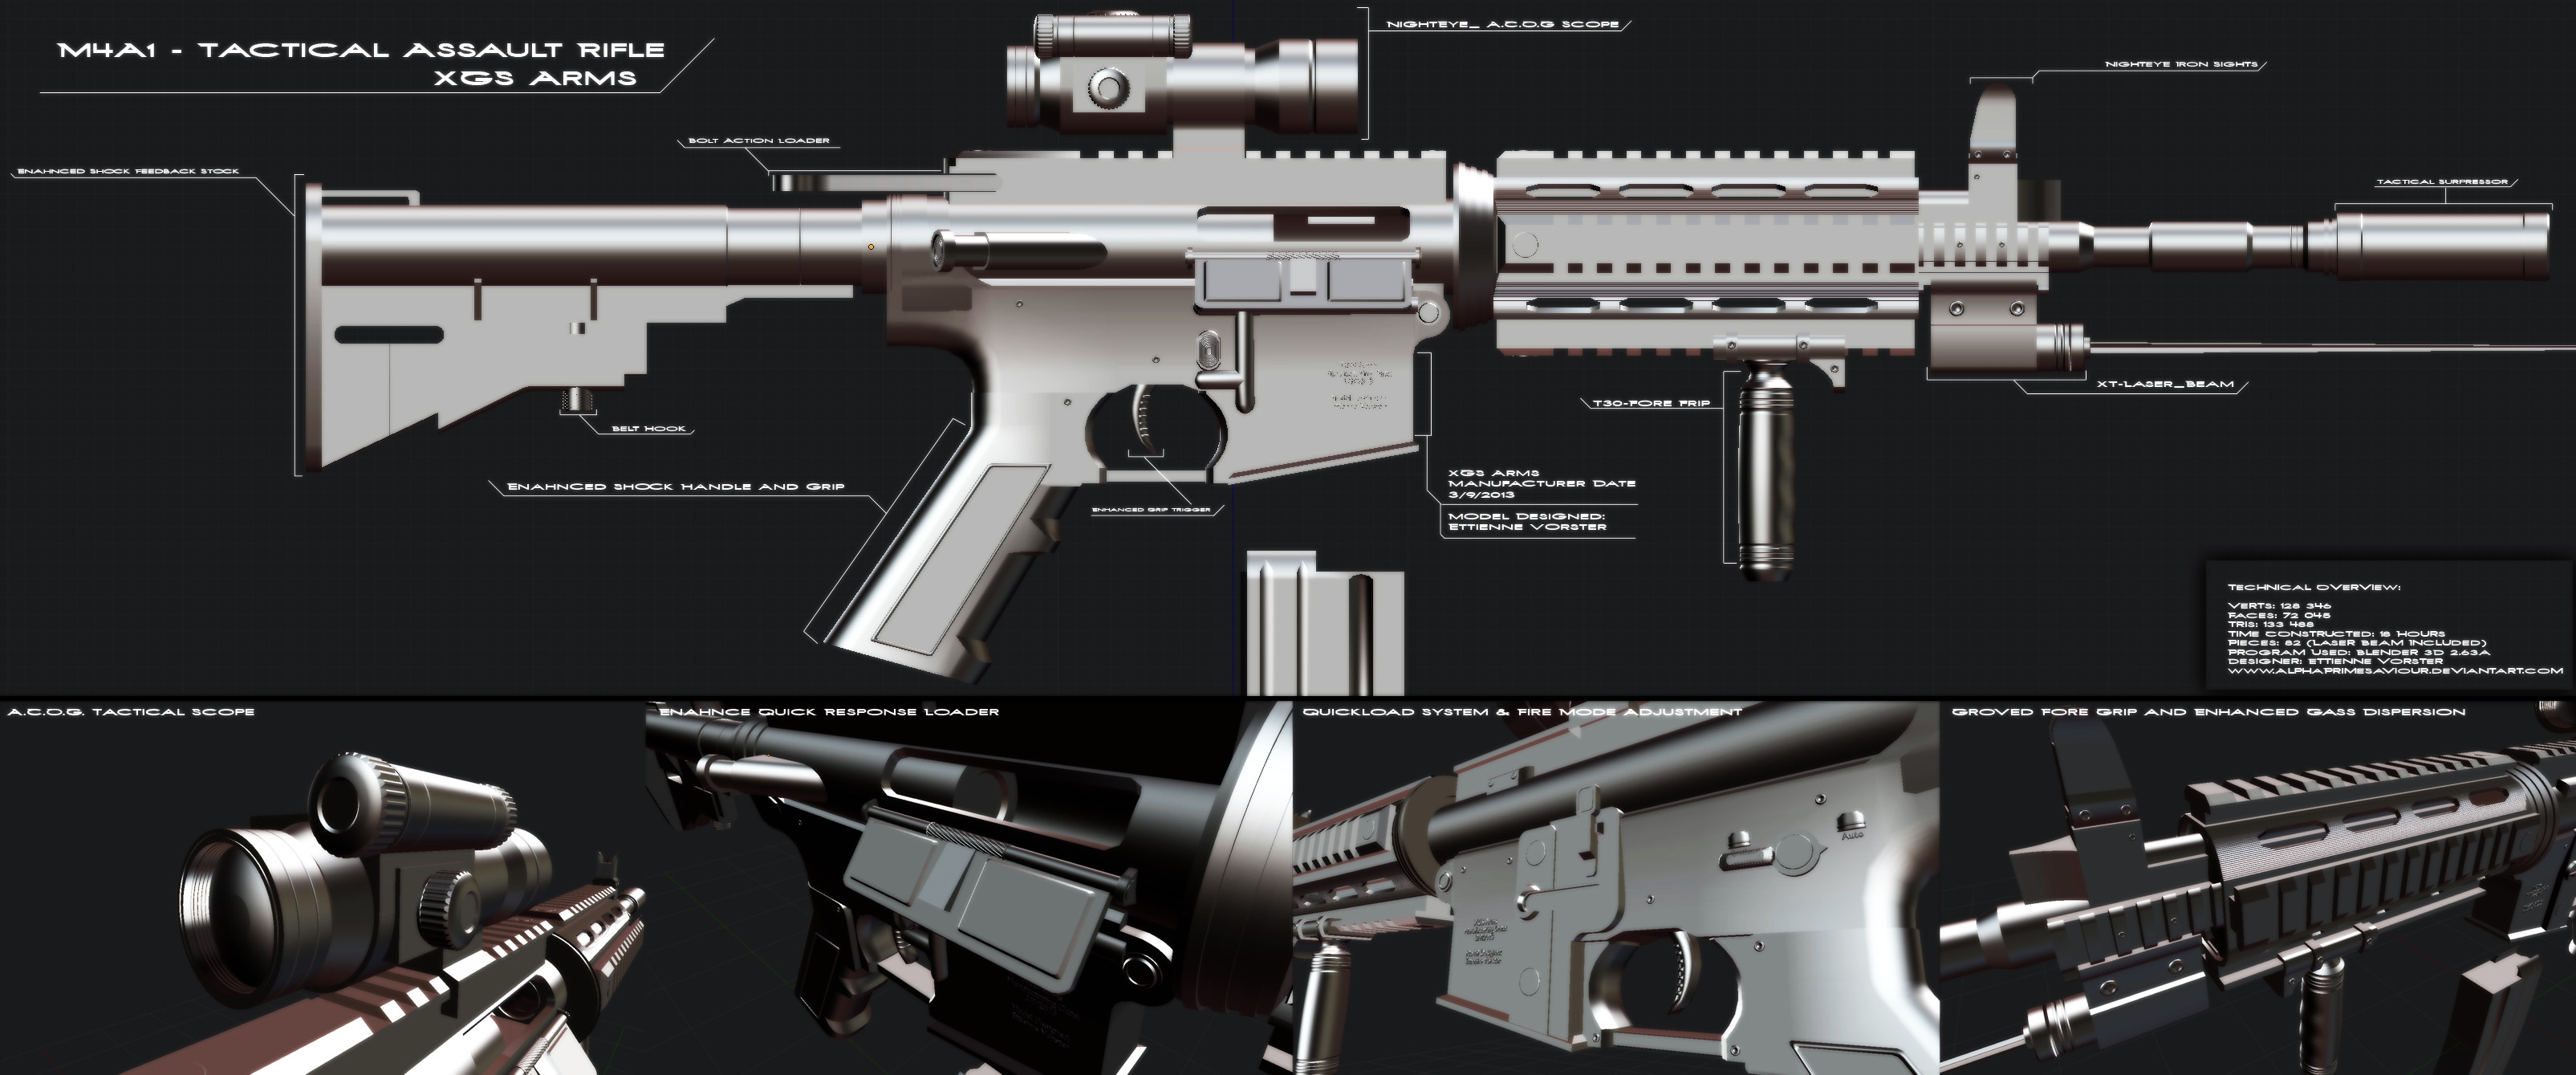 Res: 3210x1339, M4A1 weapon gun military rifle police poster y wallpaper | | 192611 | WallpaperUP